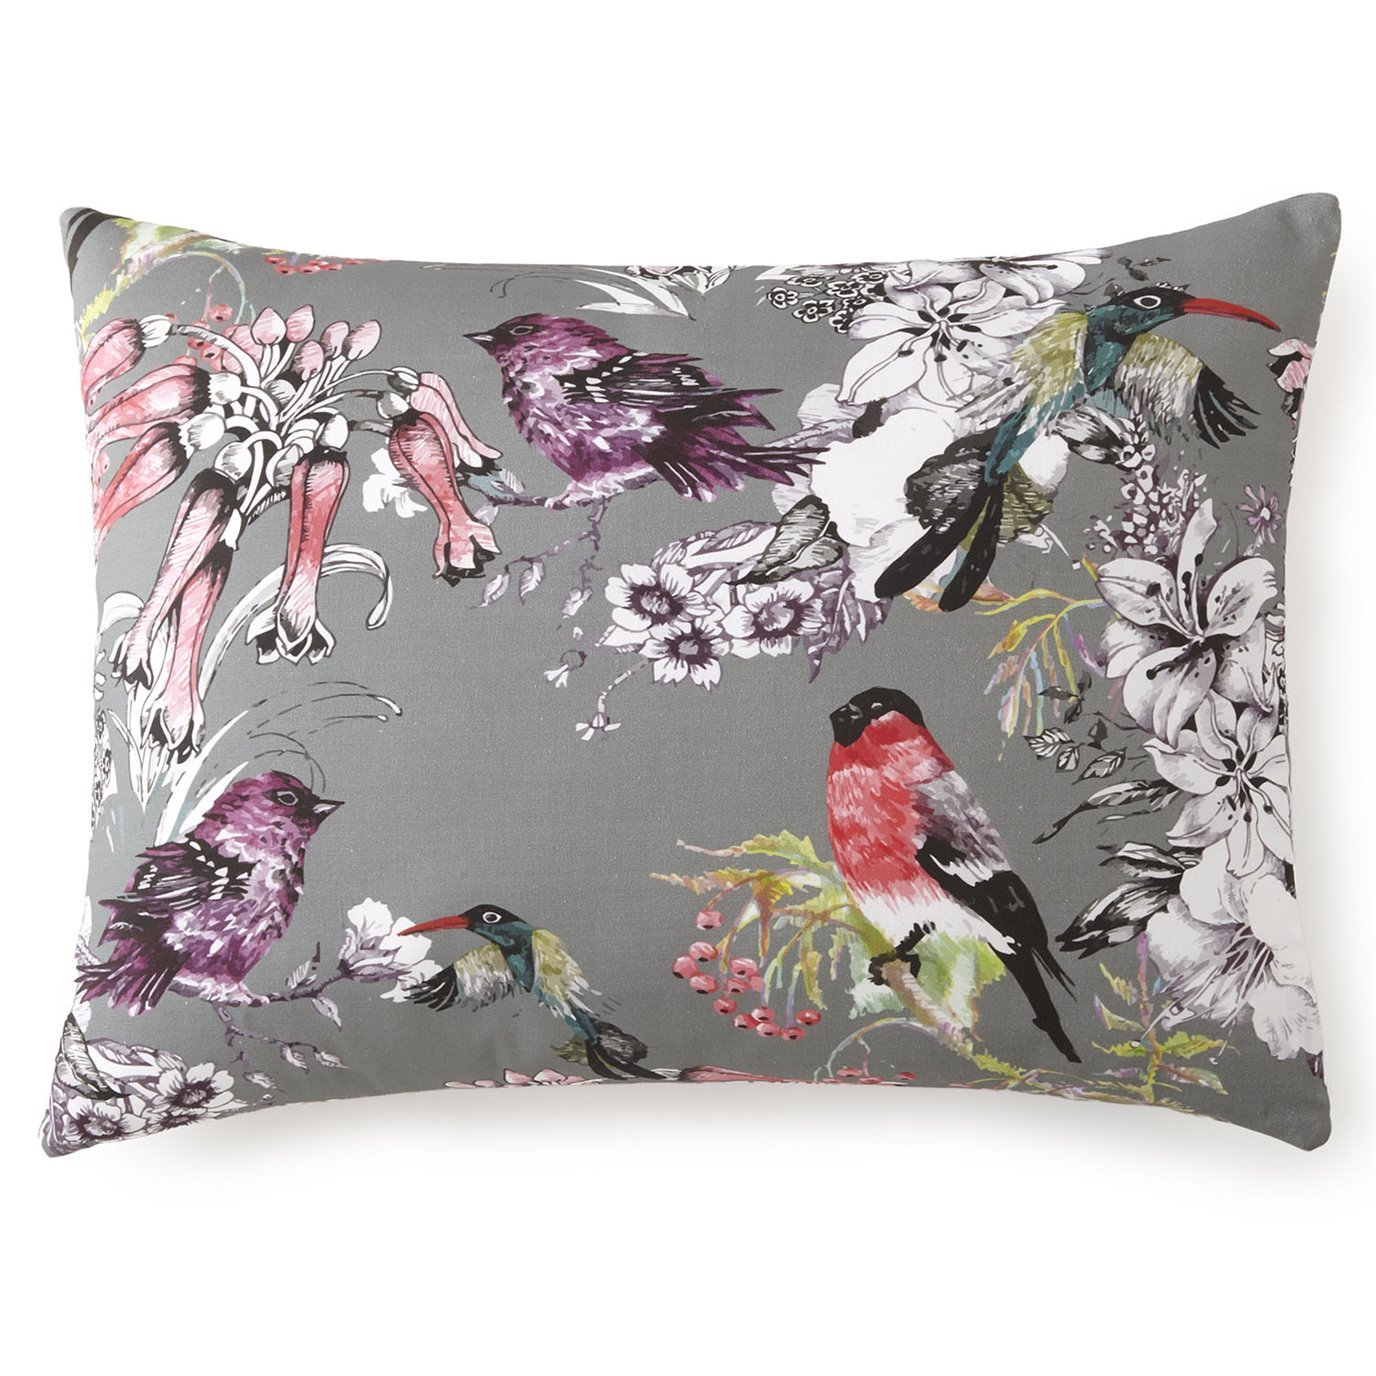 Birds In Bliss Pillow Sham King